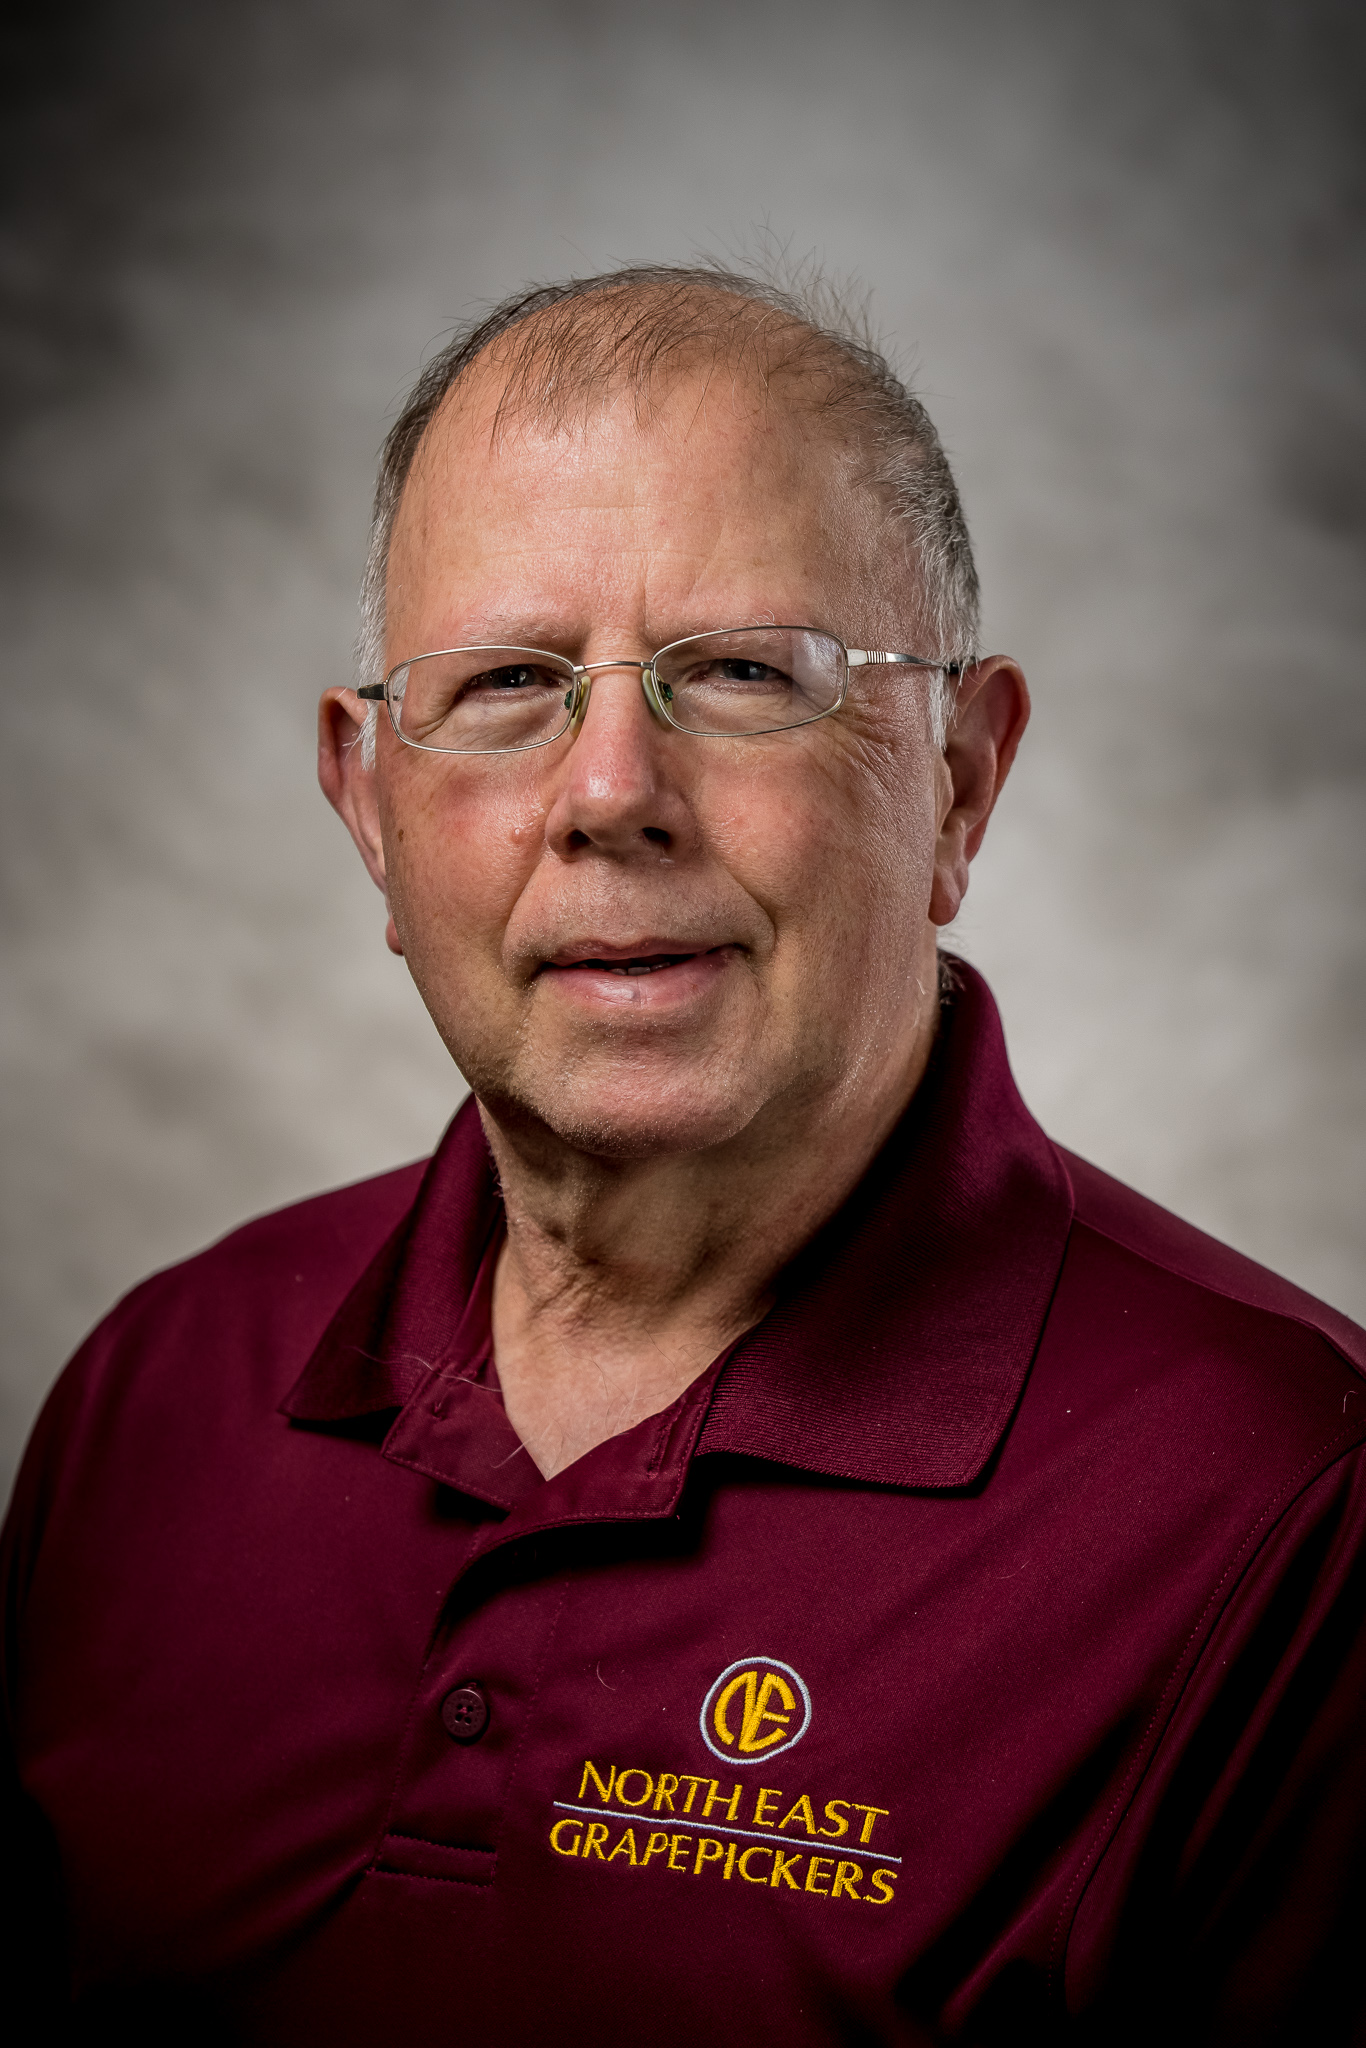 man wearing glasses and maroon collared shirt